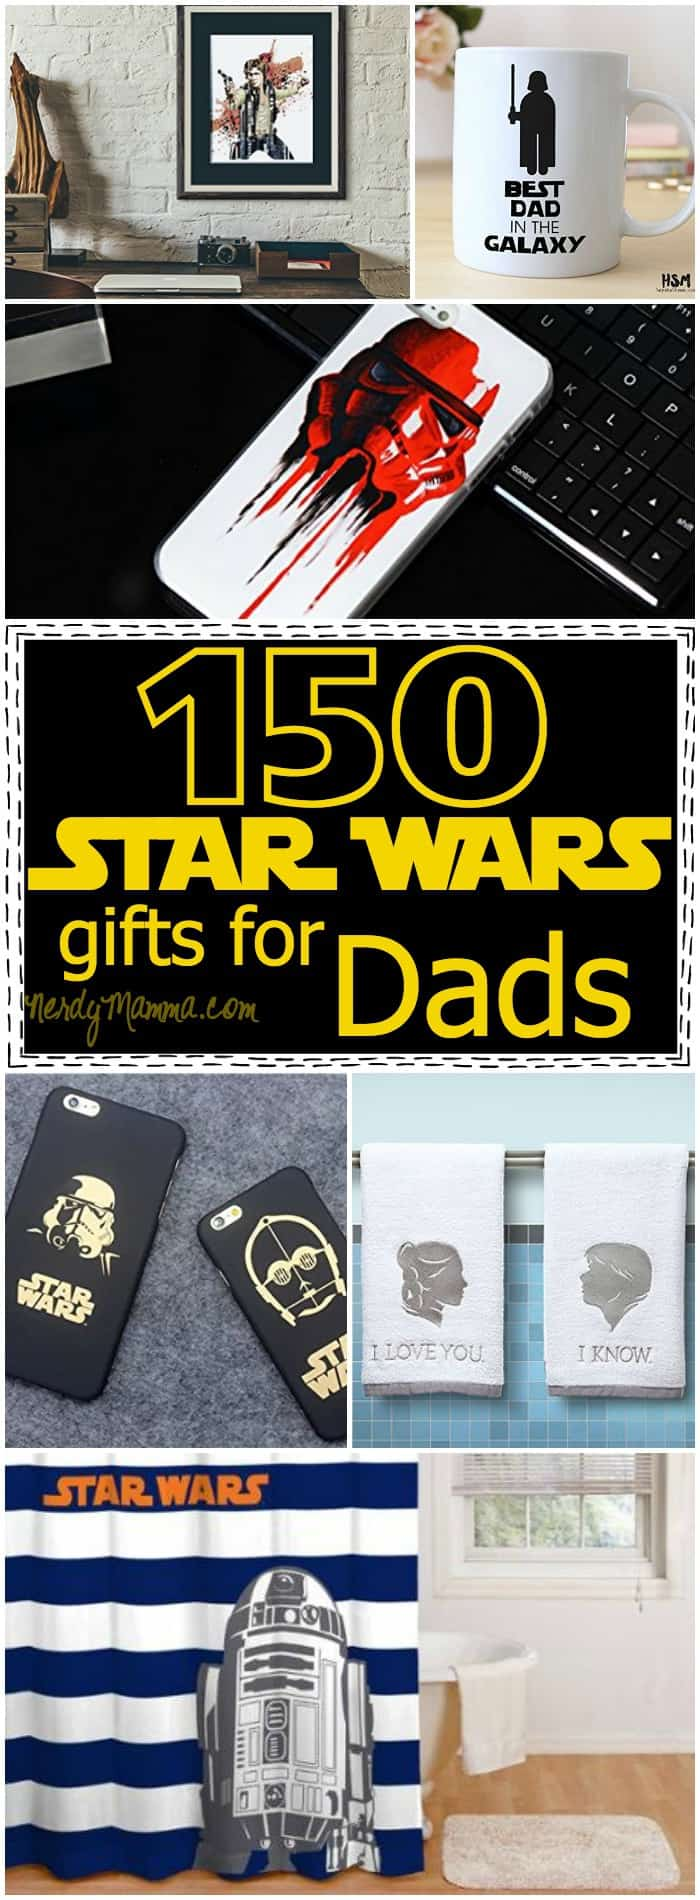 This is the BEST set of Father's Day gifts! LOL! All of them Star Wars and all of them fun! Can't wait to buy one...but which one to pick LOL!